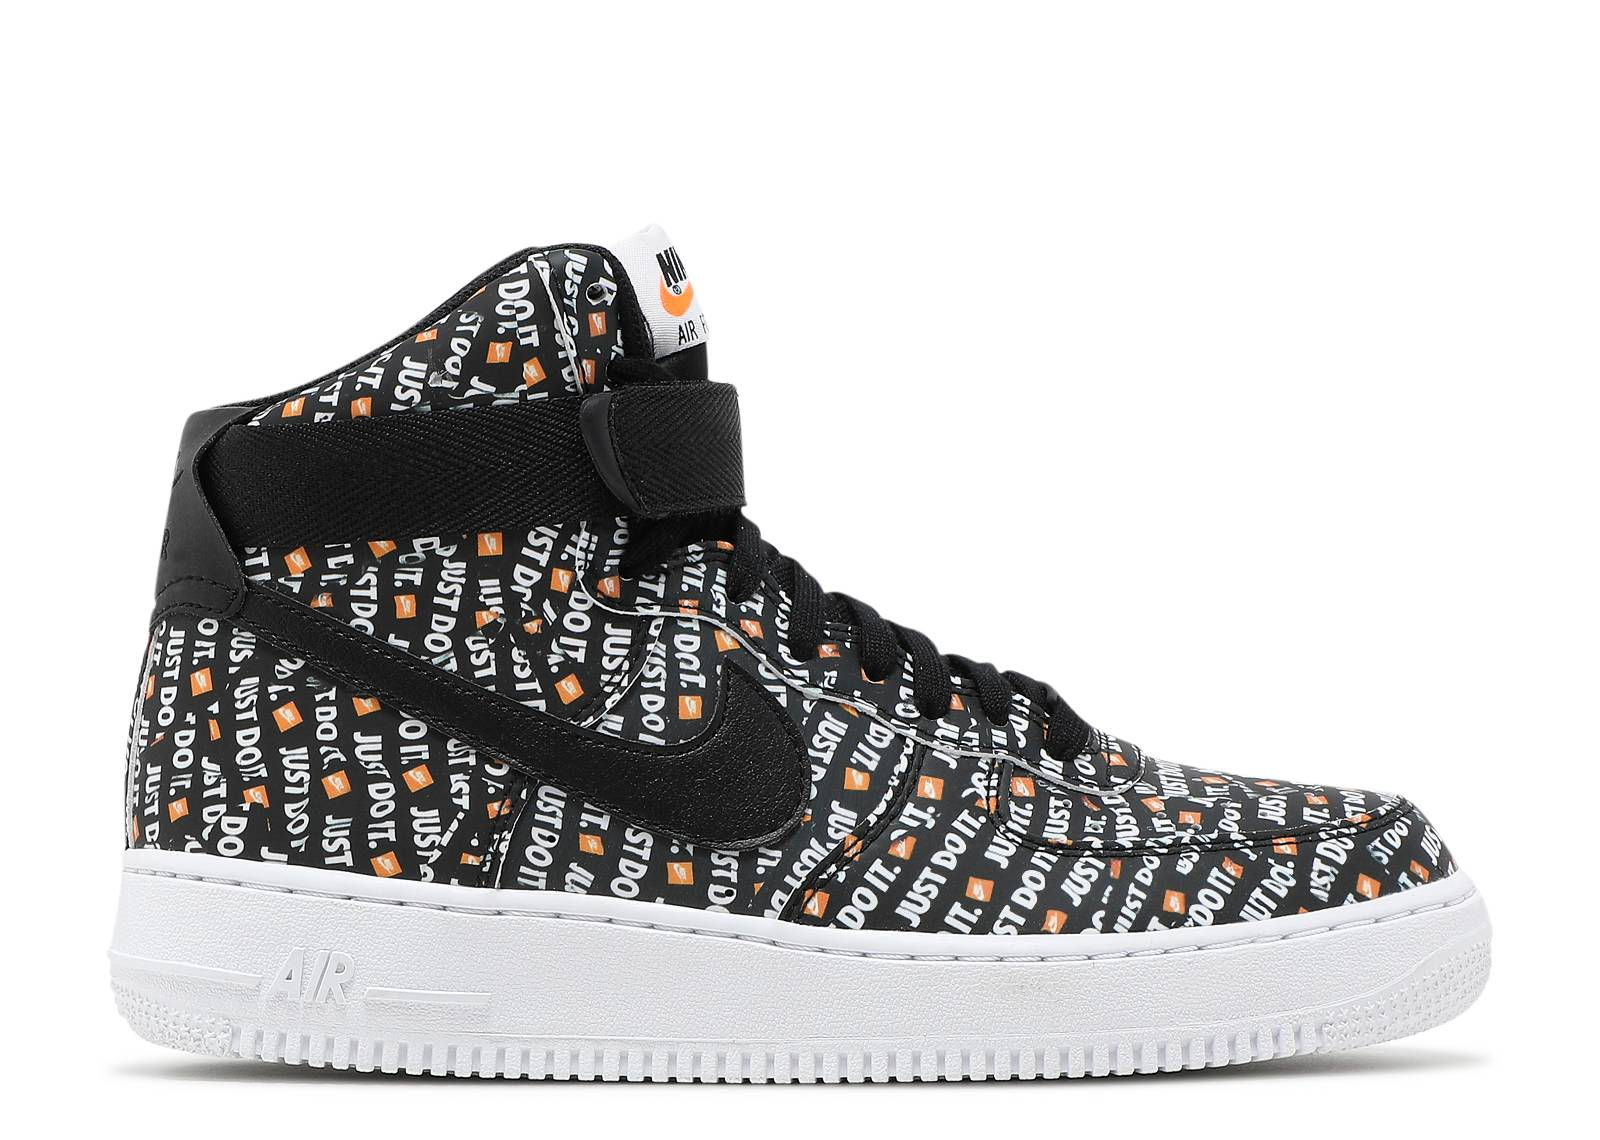 on sale f0d1b 03889 Nike Air Force 1 High LV8